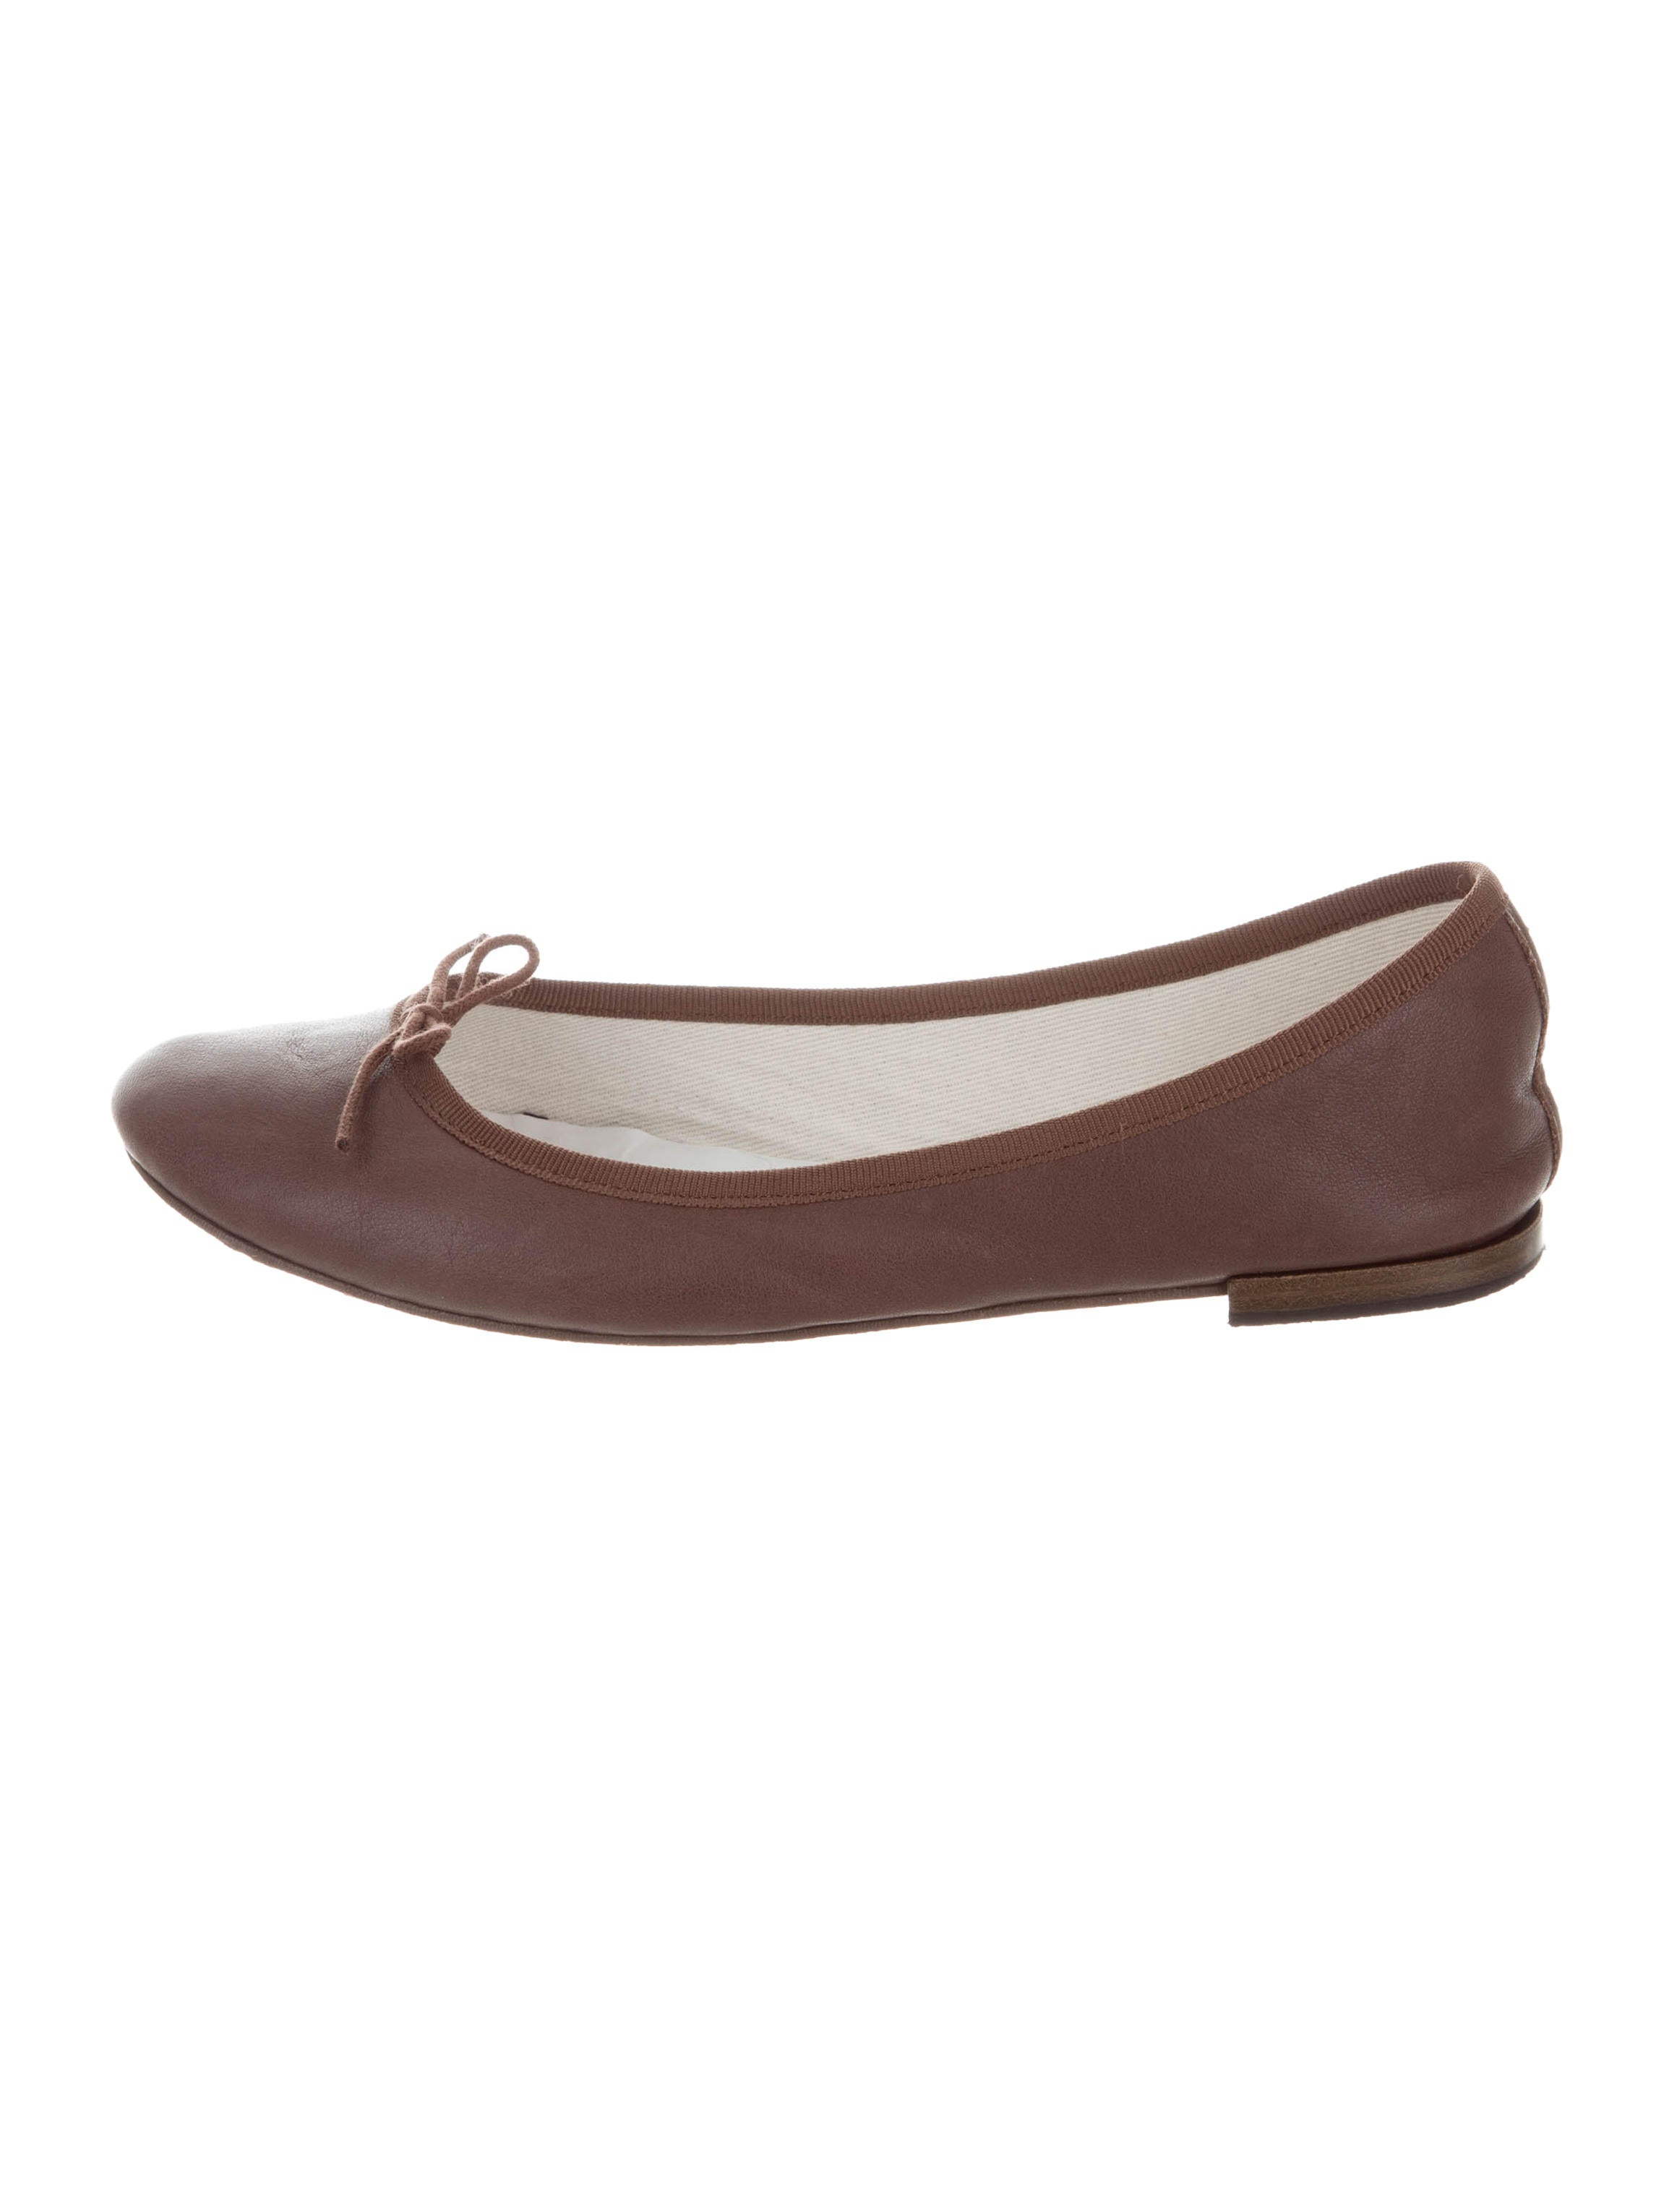 Repetto Leather Round-Toe Flats shop for for sale classic discounts online brand new unisex outlet locations for sale W9mNryPjPp